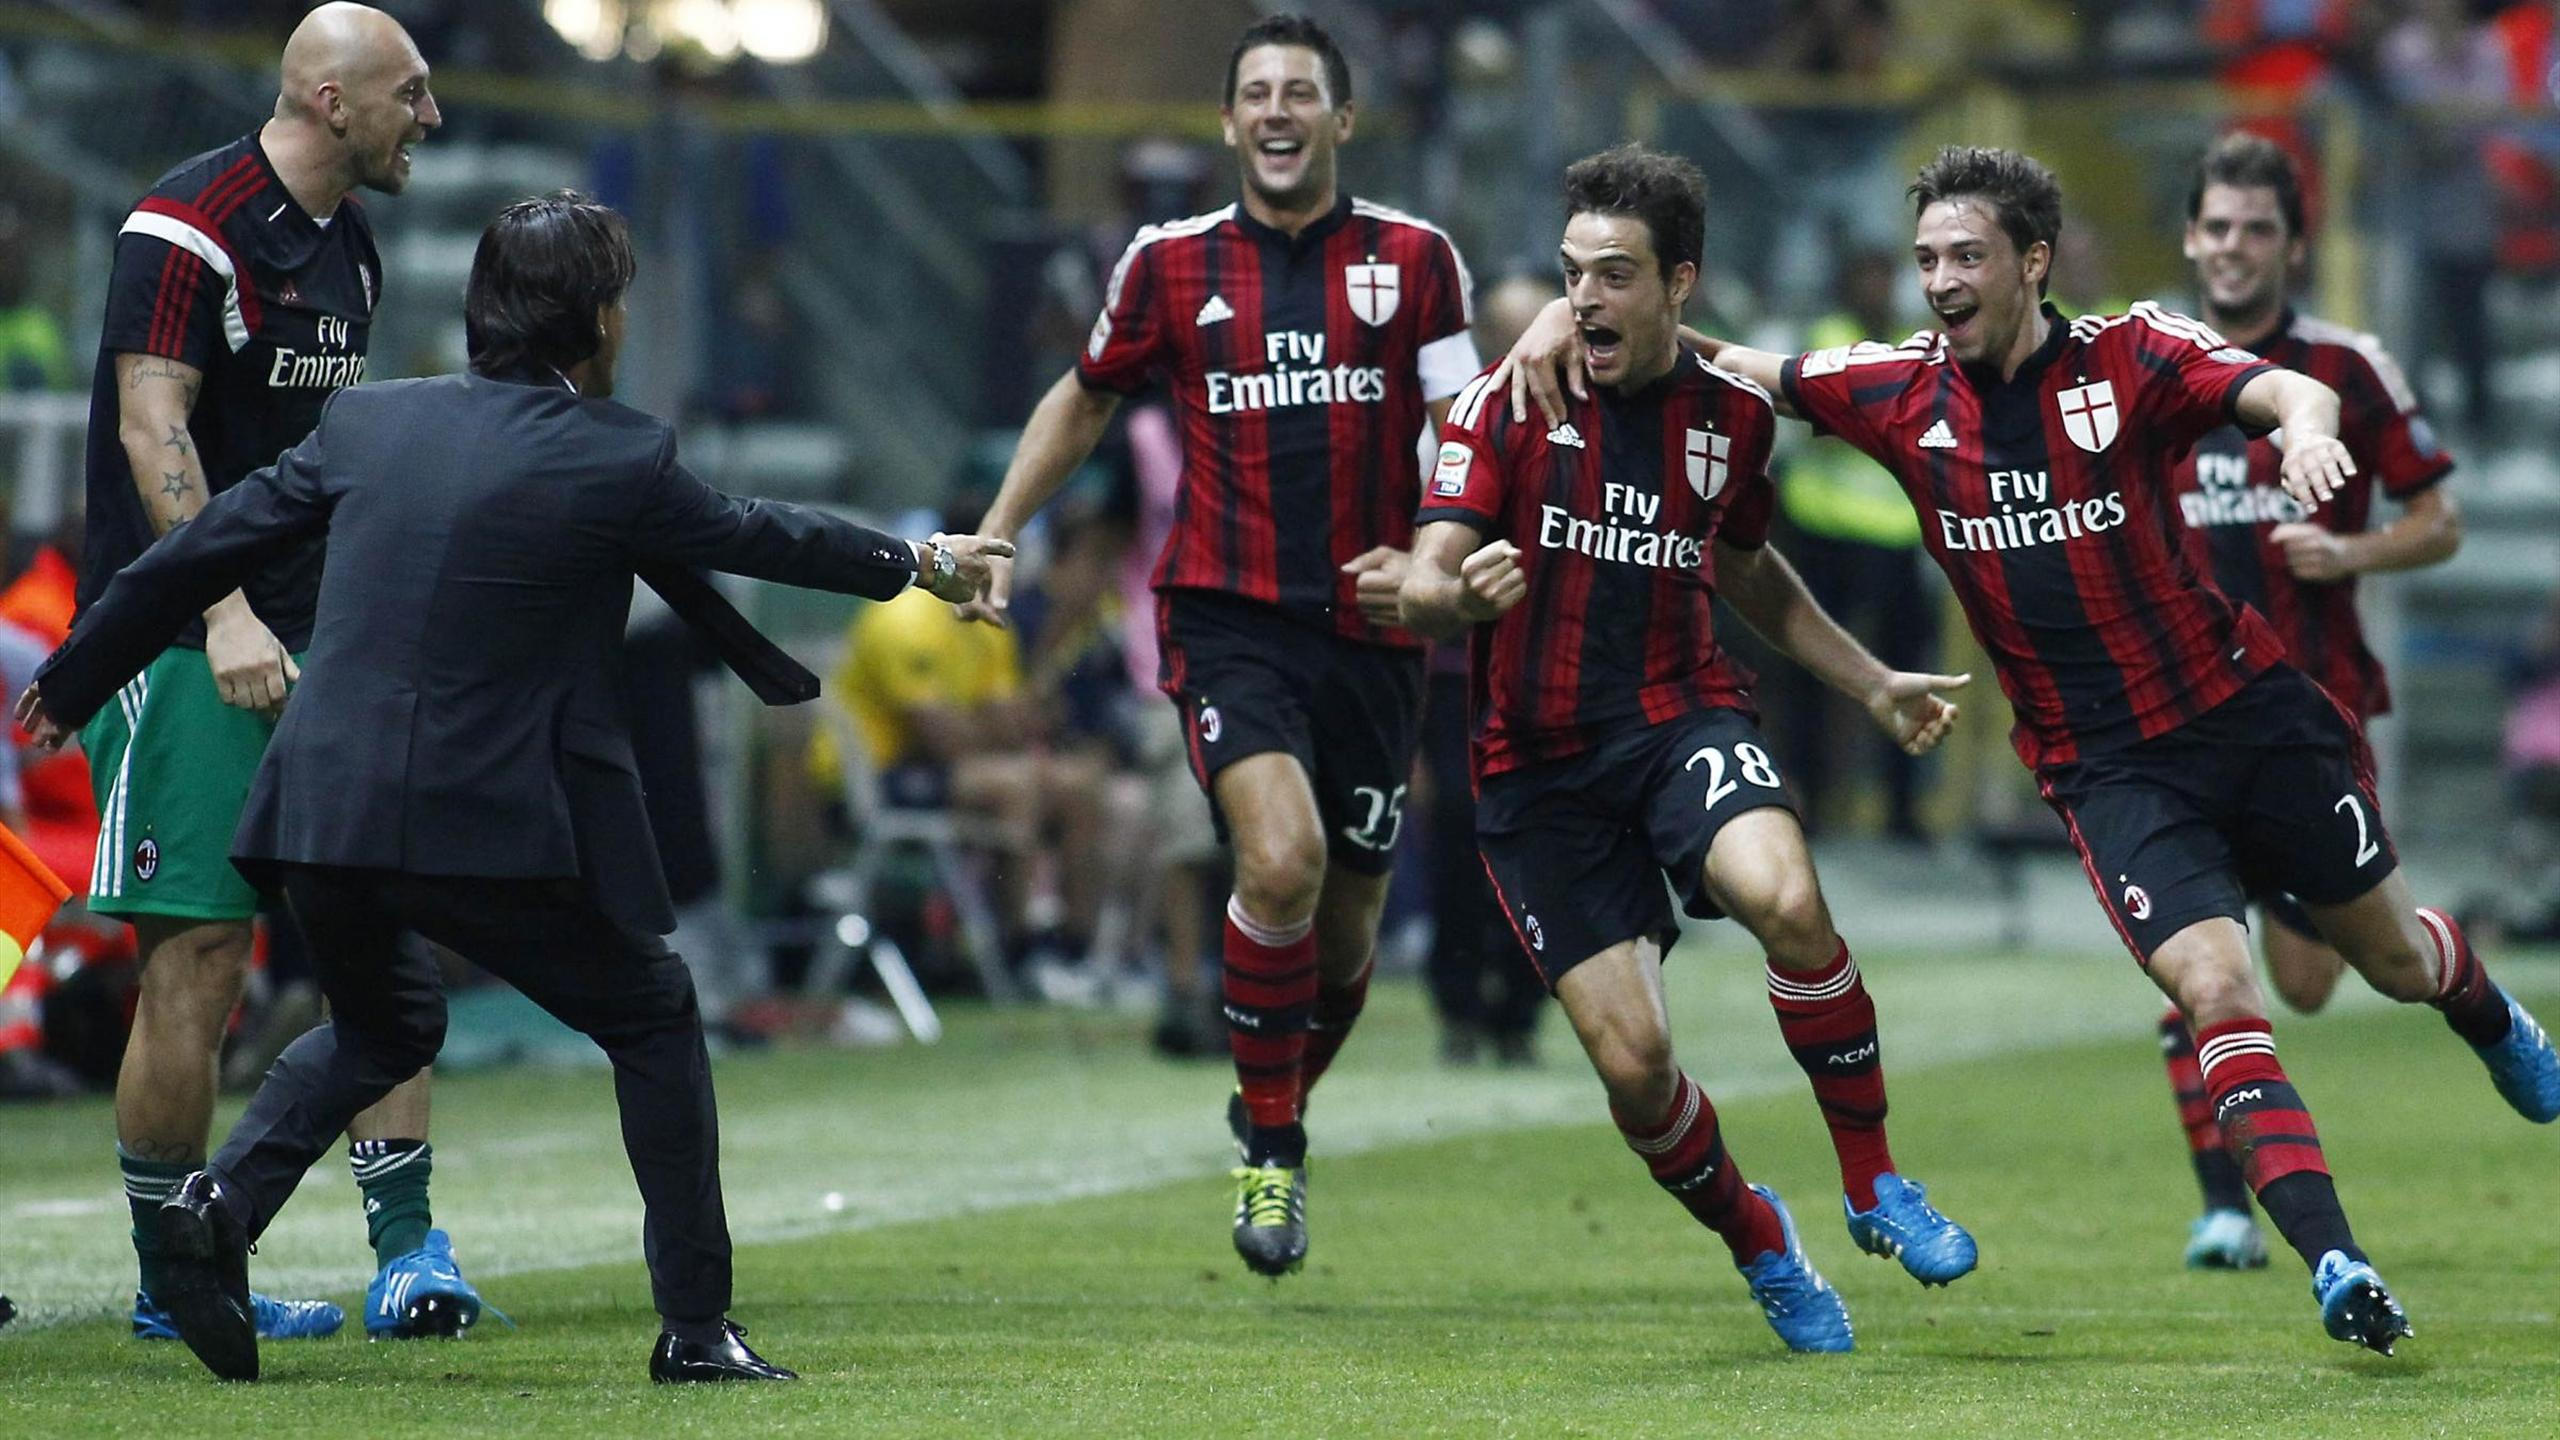 Video: Parma vs AC Milan